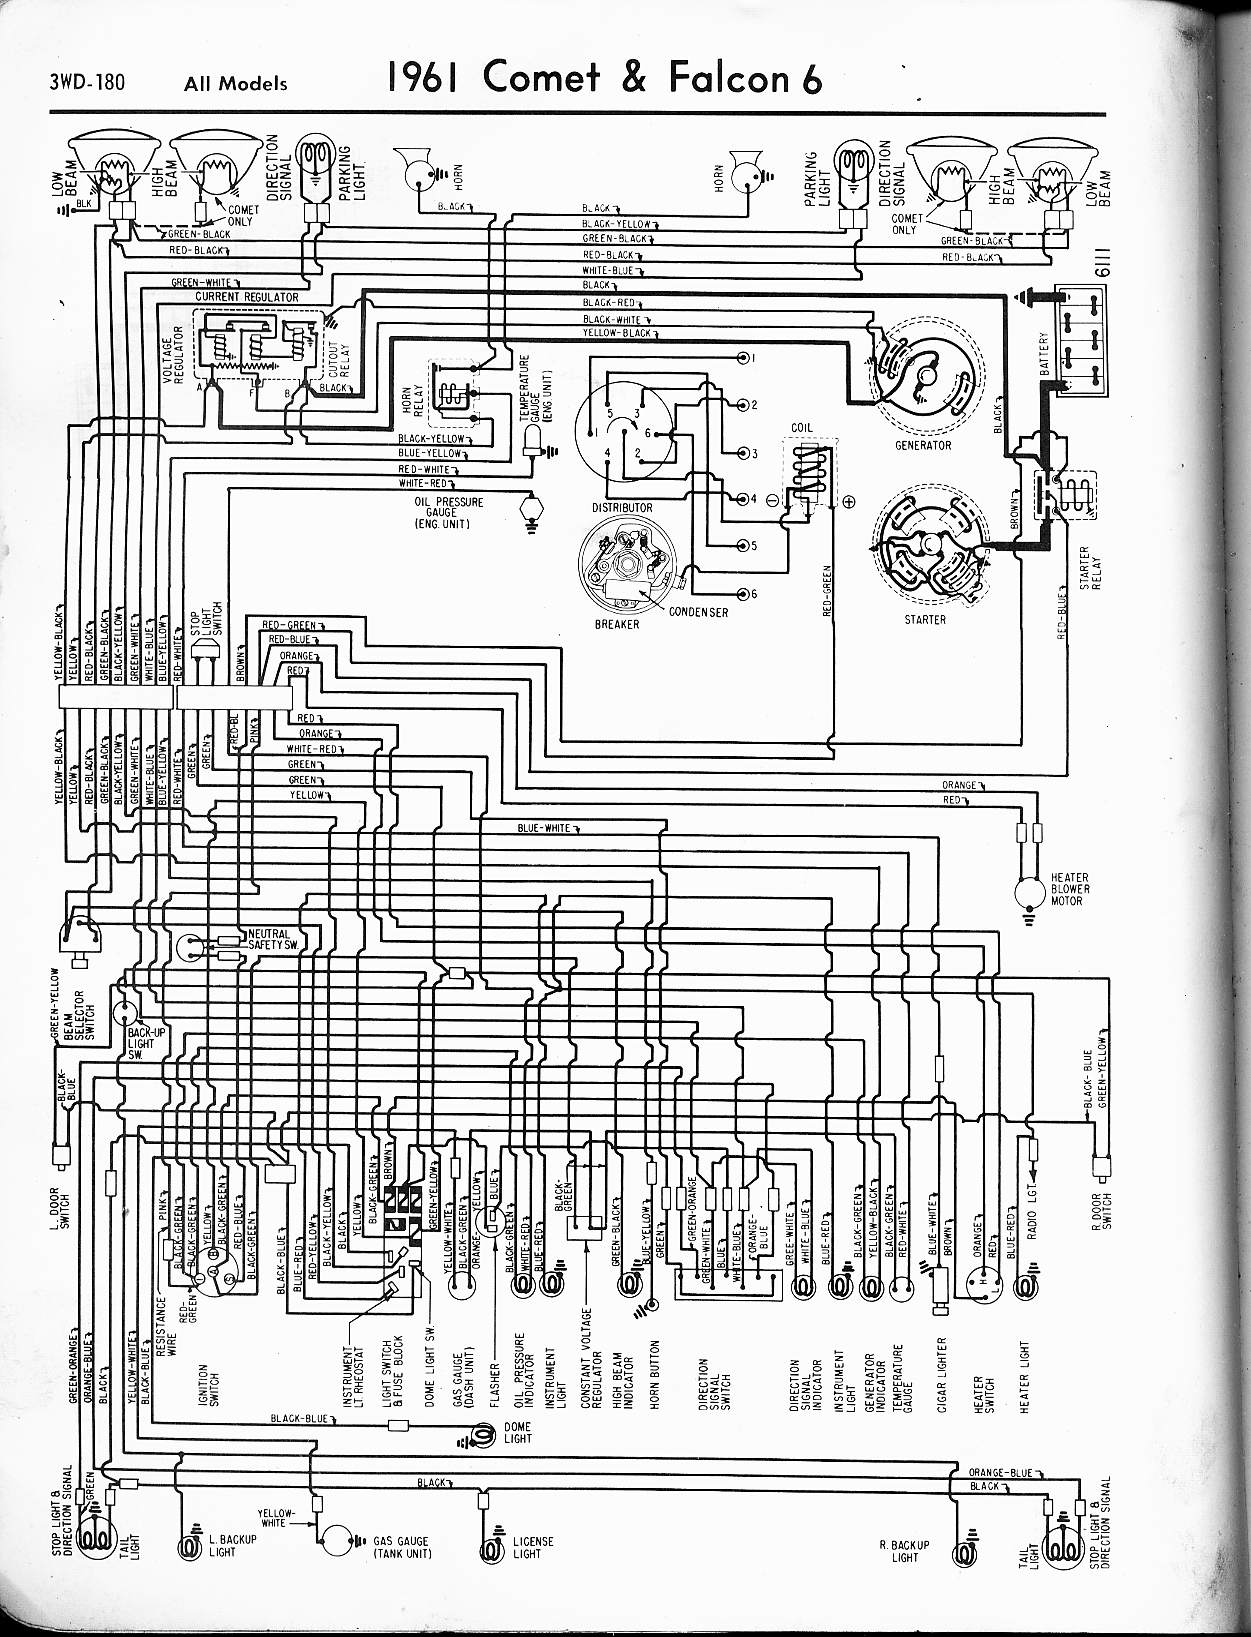 MWire5765 180 au falcon wiring diagram falcon guide \u2022 wiring diagrams j squared co  at webbmarketing.co